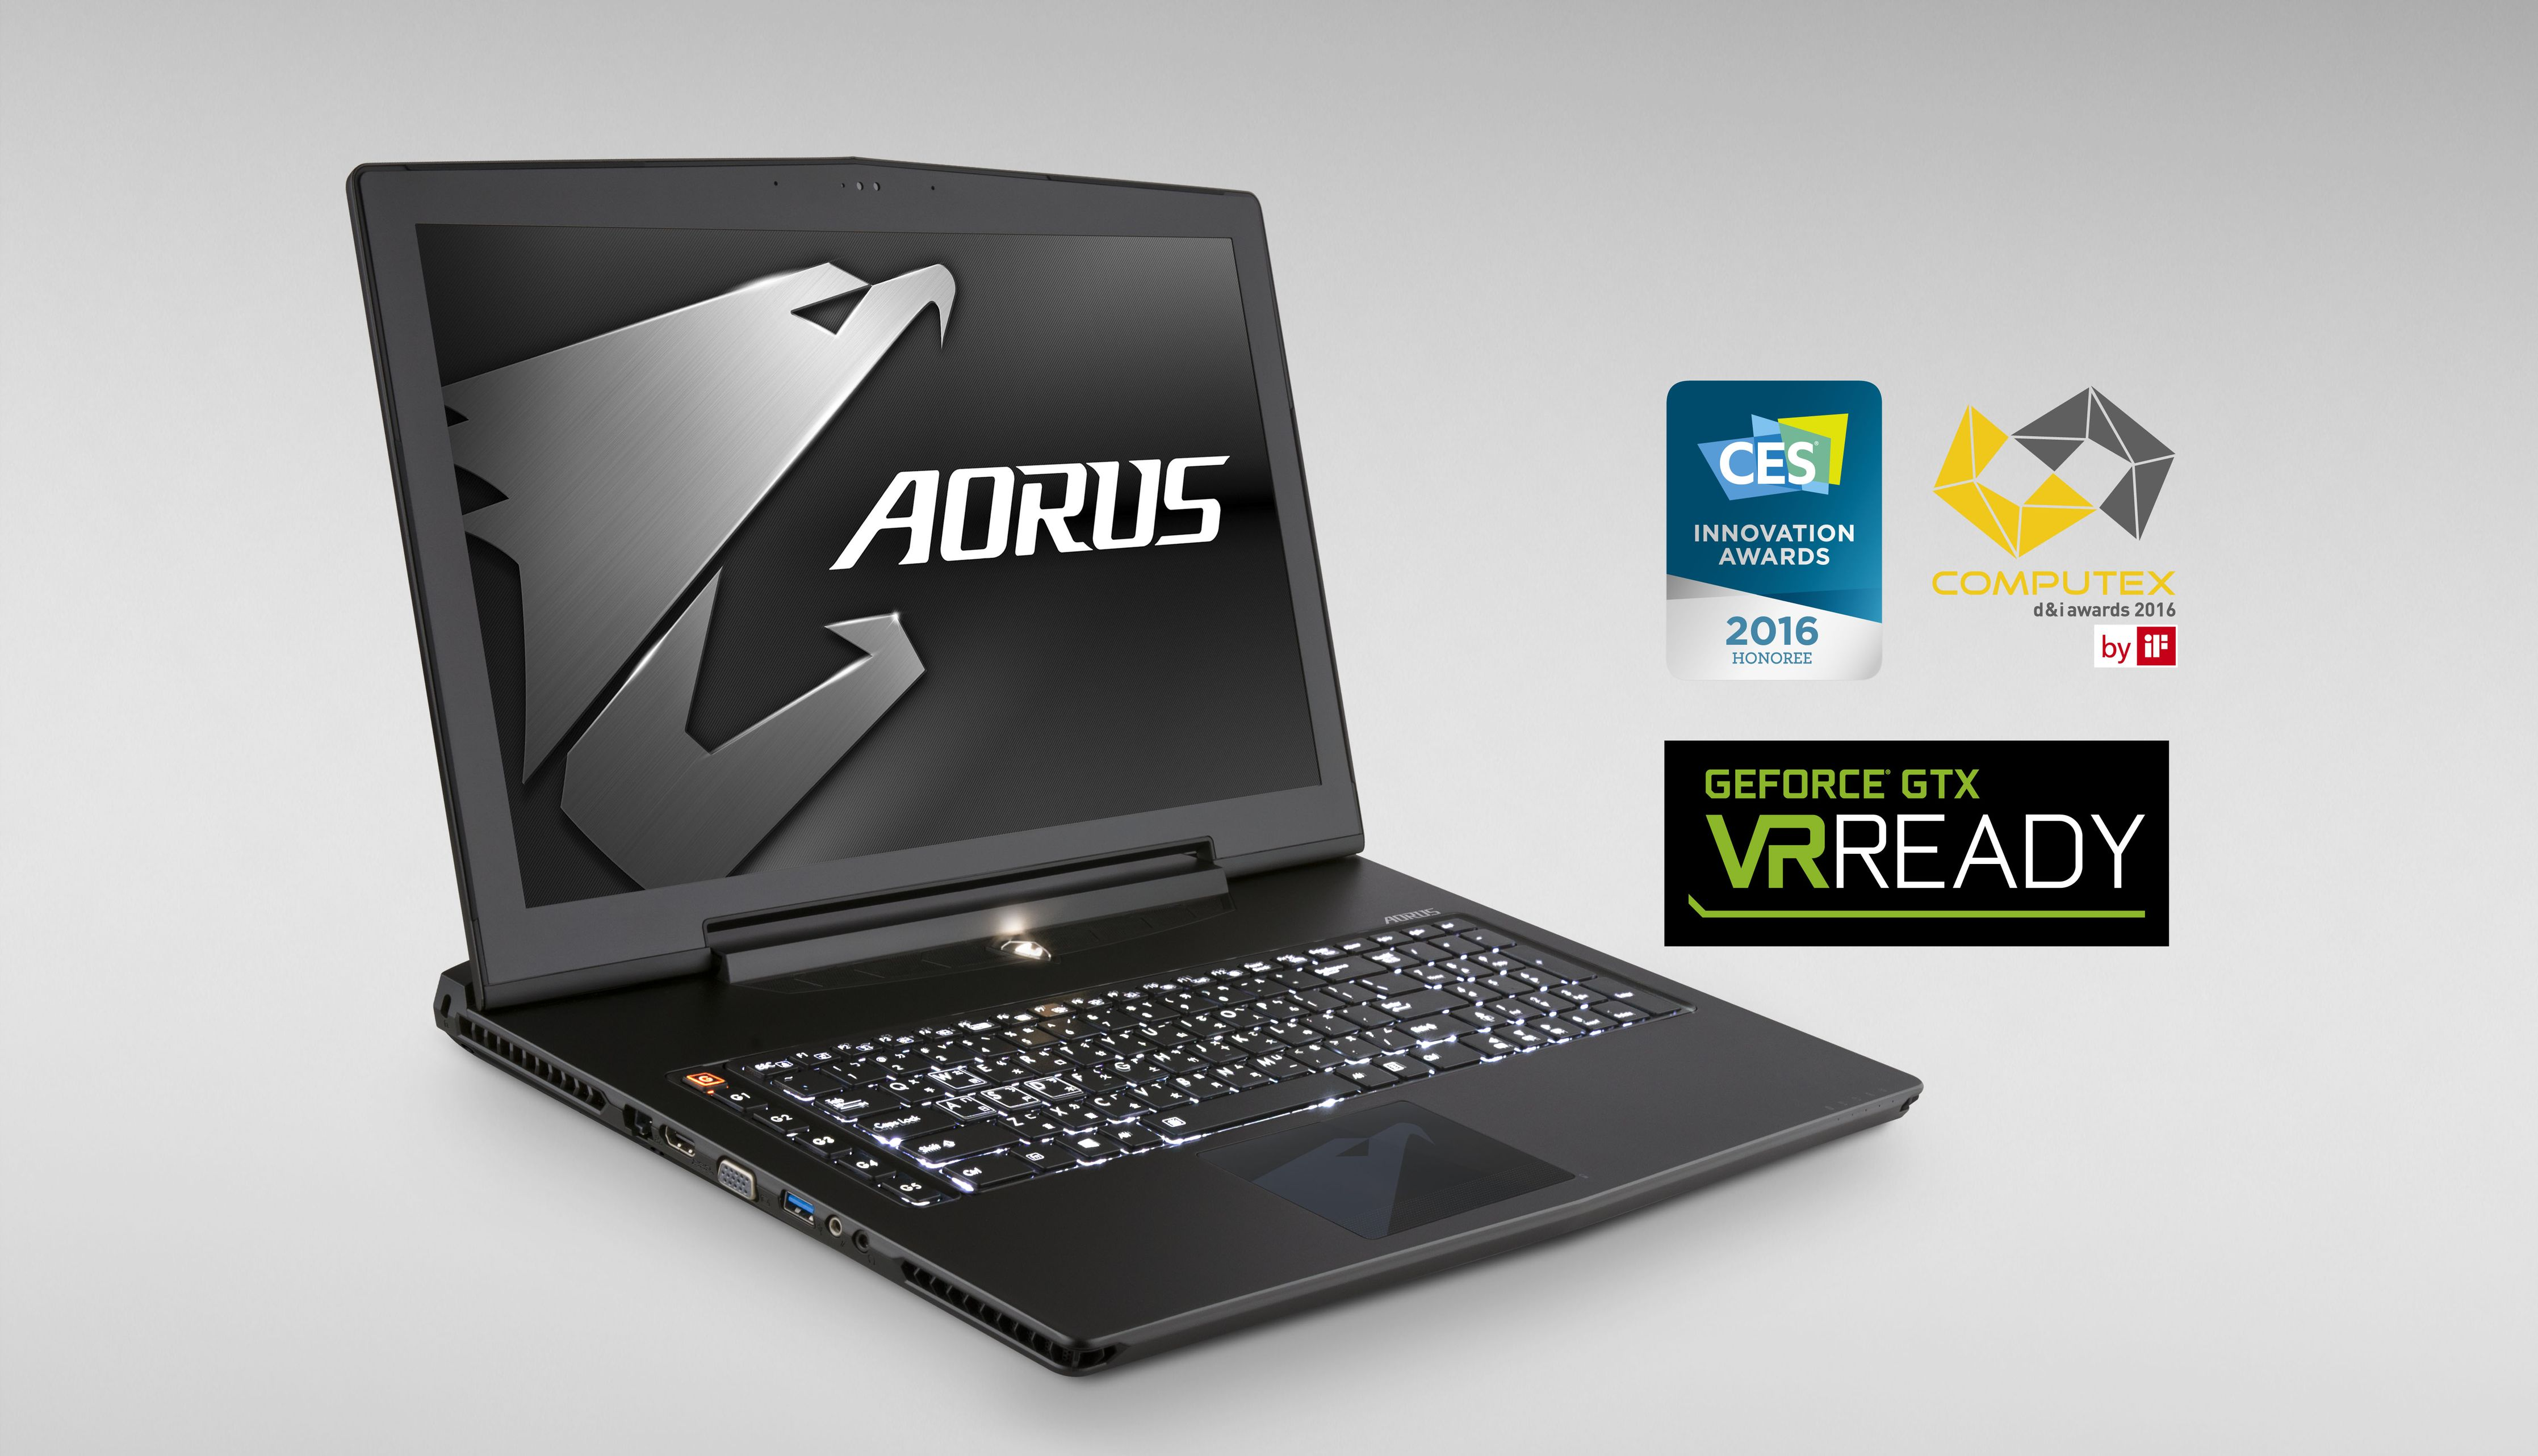 Aorus X7 DT gaming notebook coming with GTX 980 and XSplit